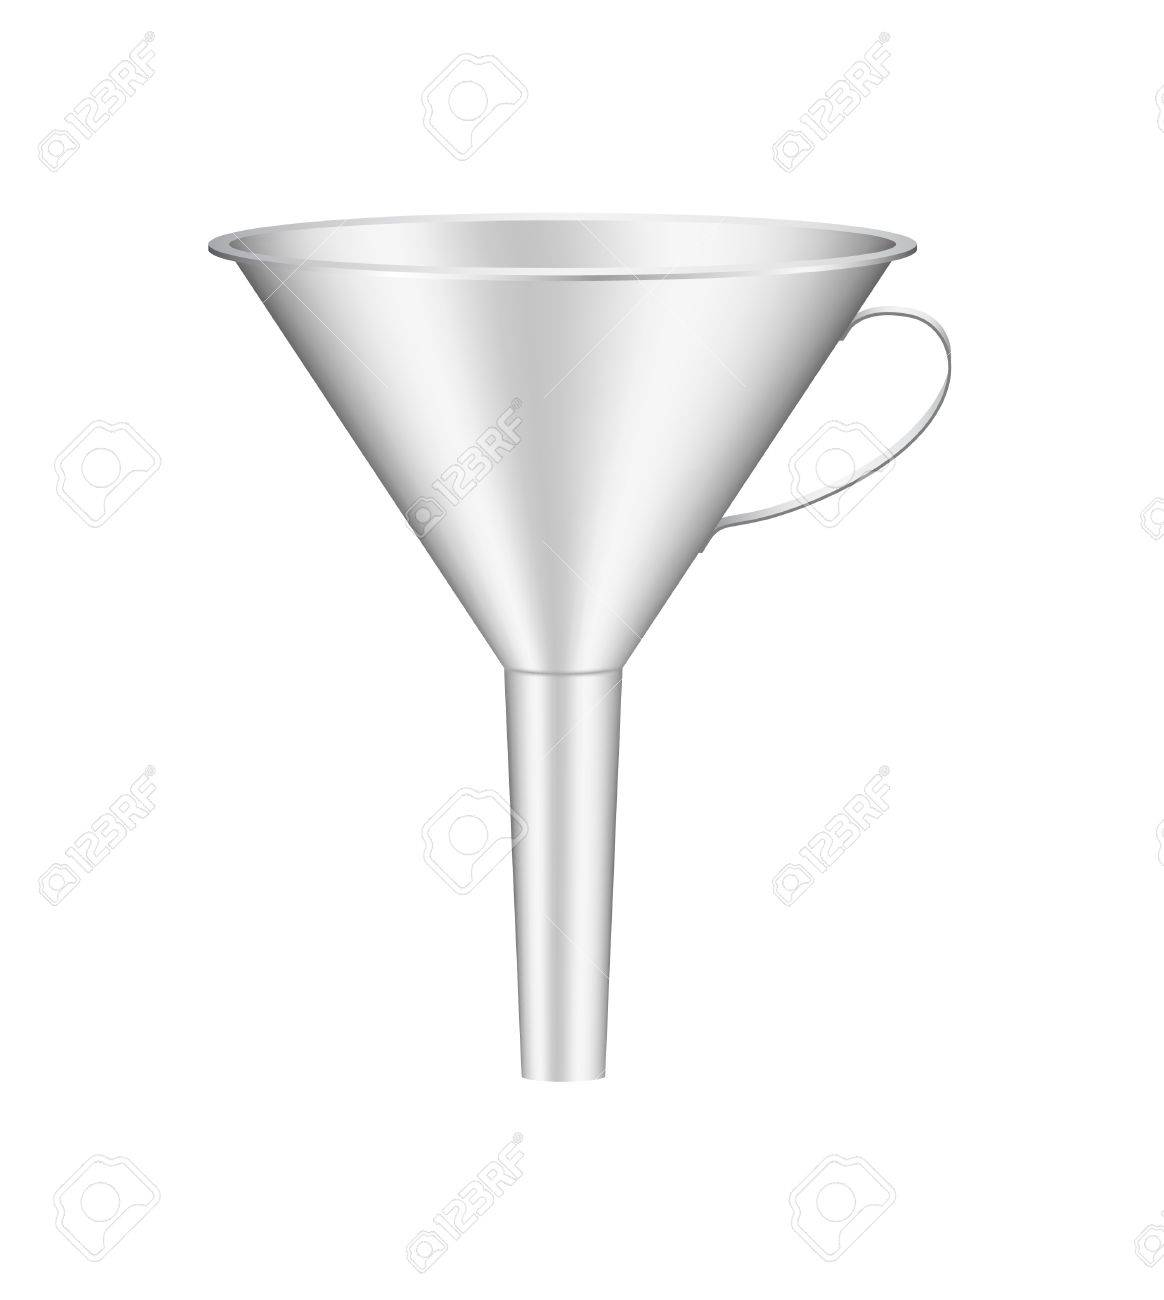 Funnel Stock Vector - 13277723